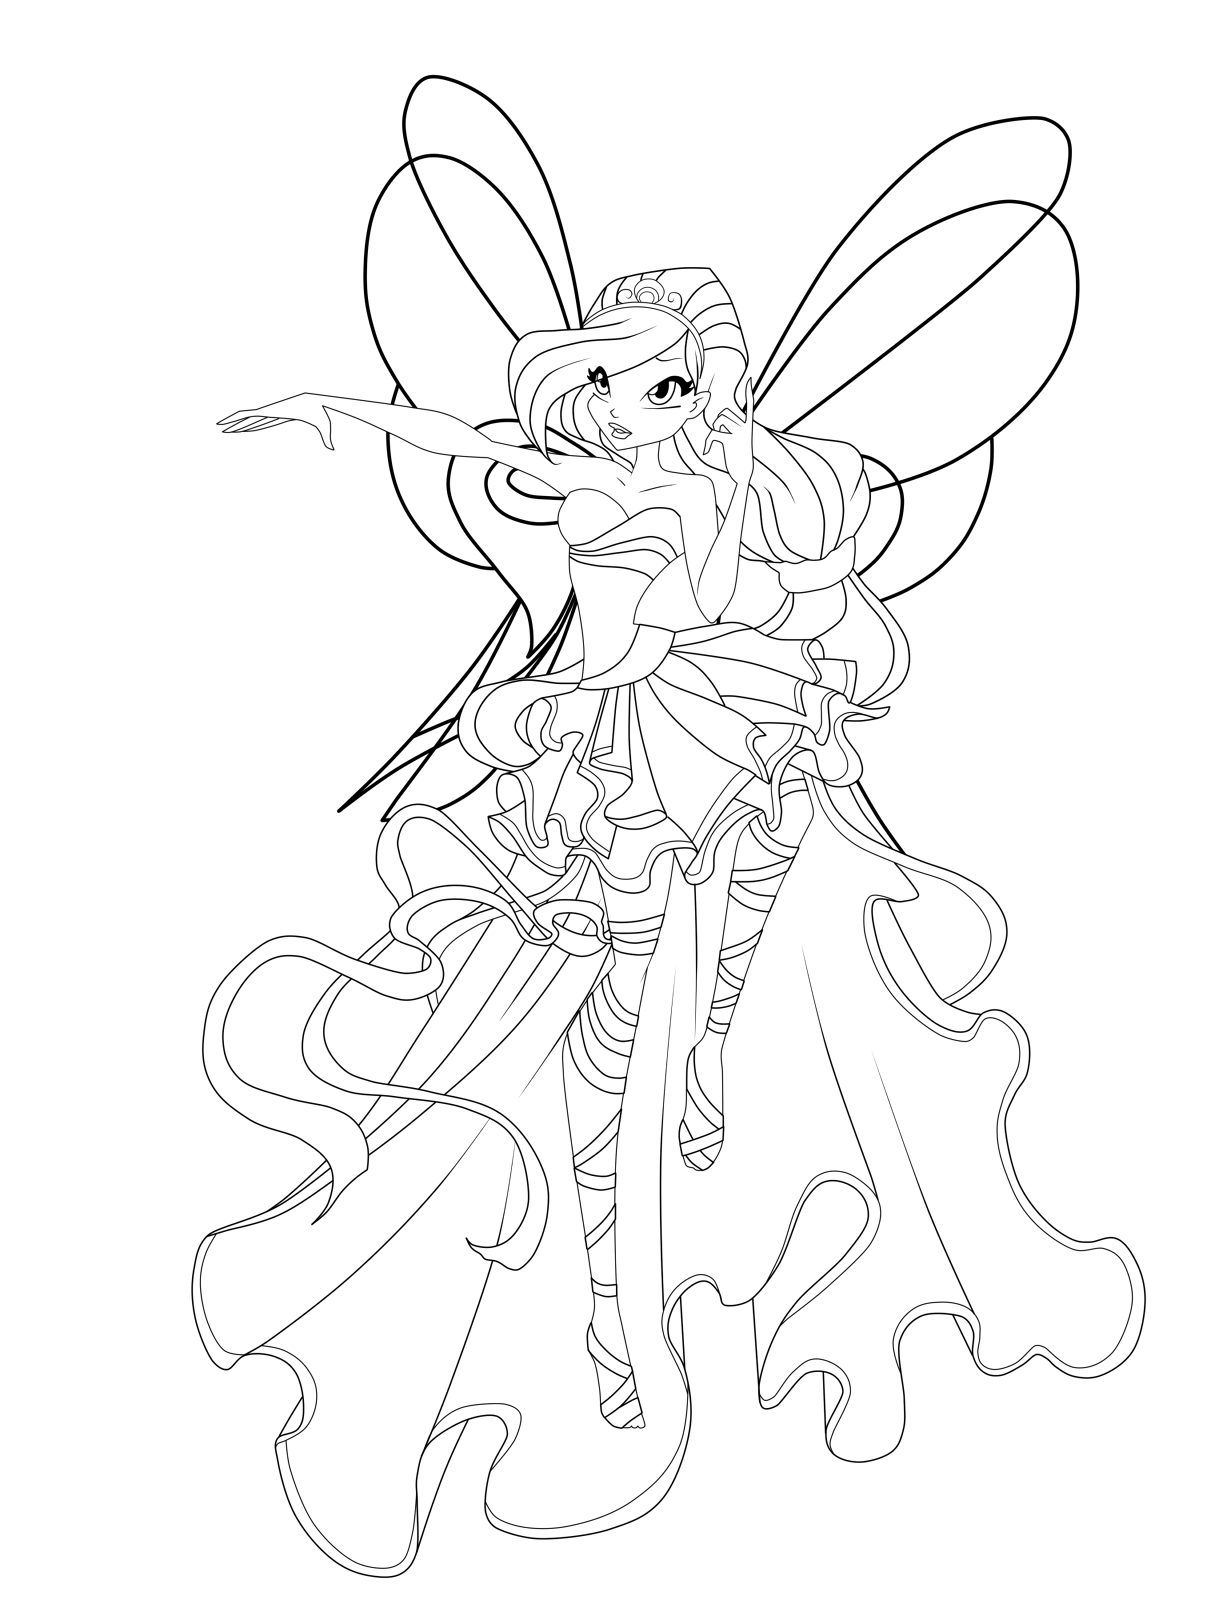 Winx Sirenix Coloring Pages To Download And Print For Free